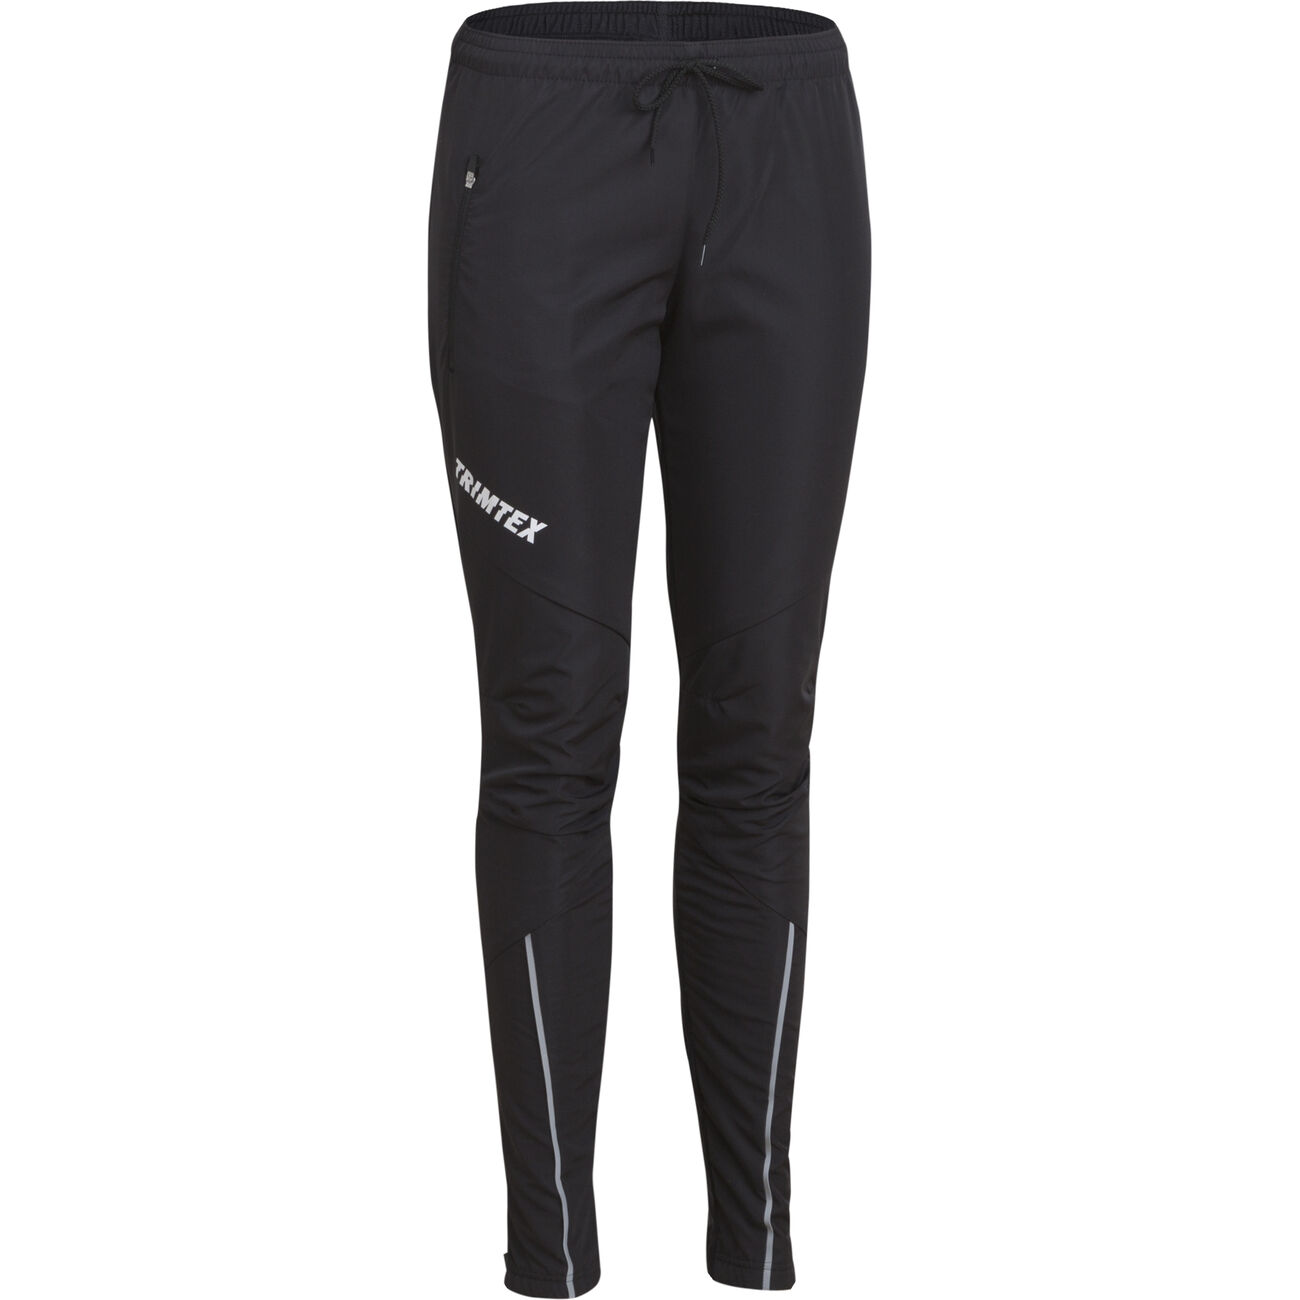 Pulse pants women's